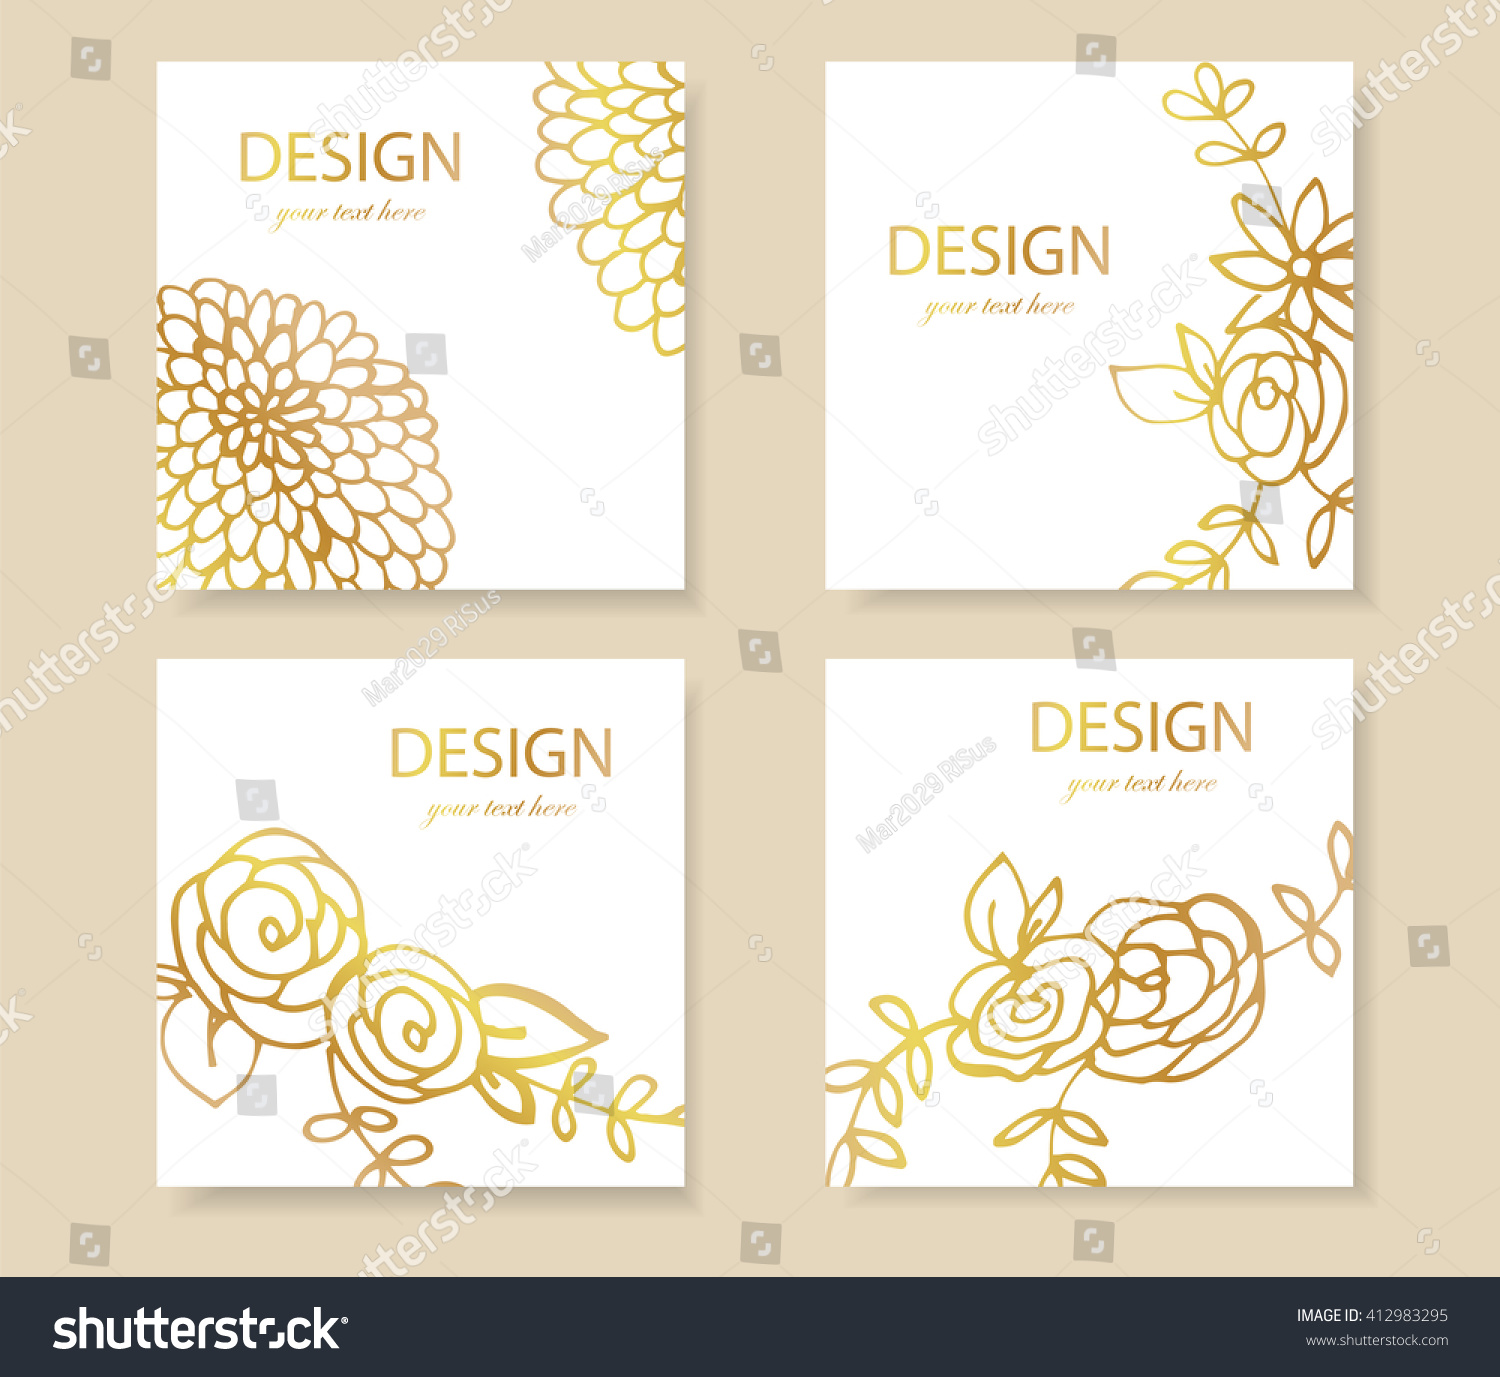 design templates business cards gold flyers stock vector